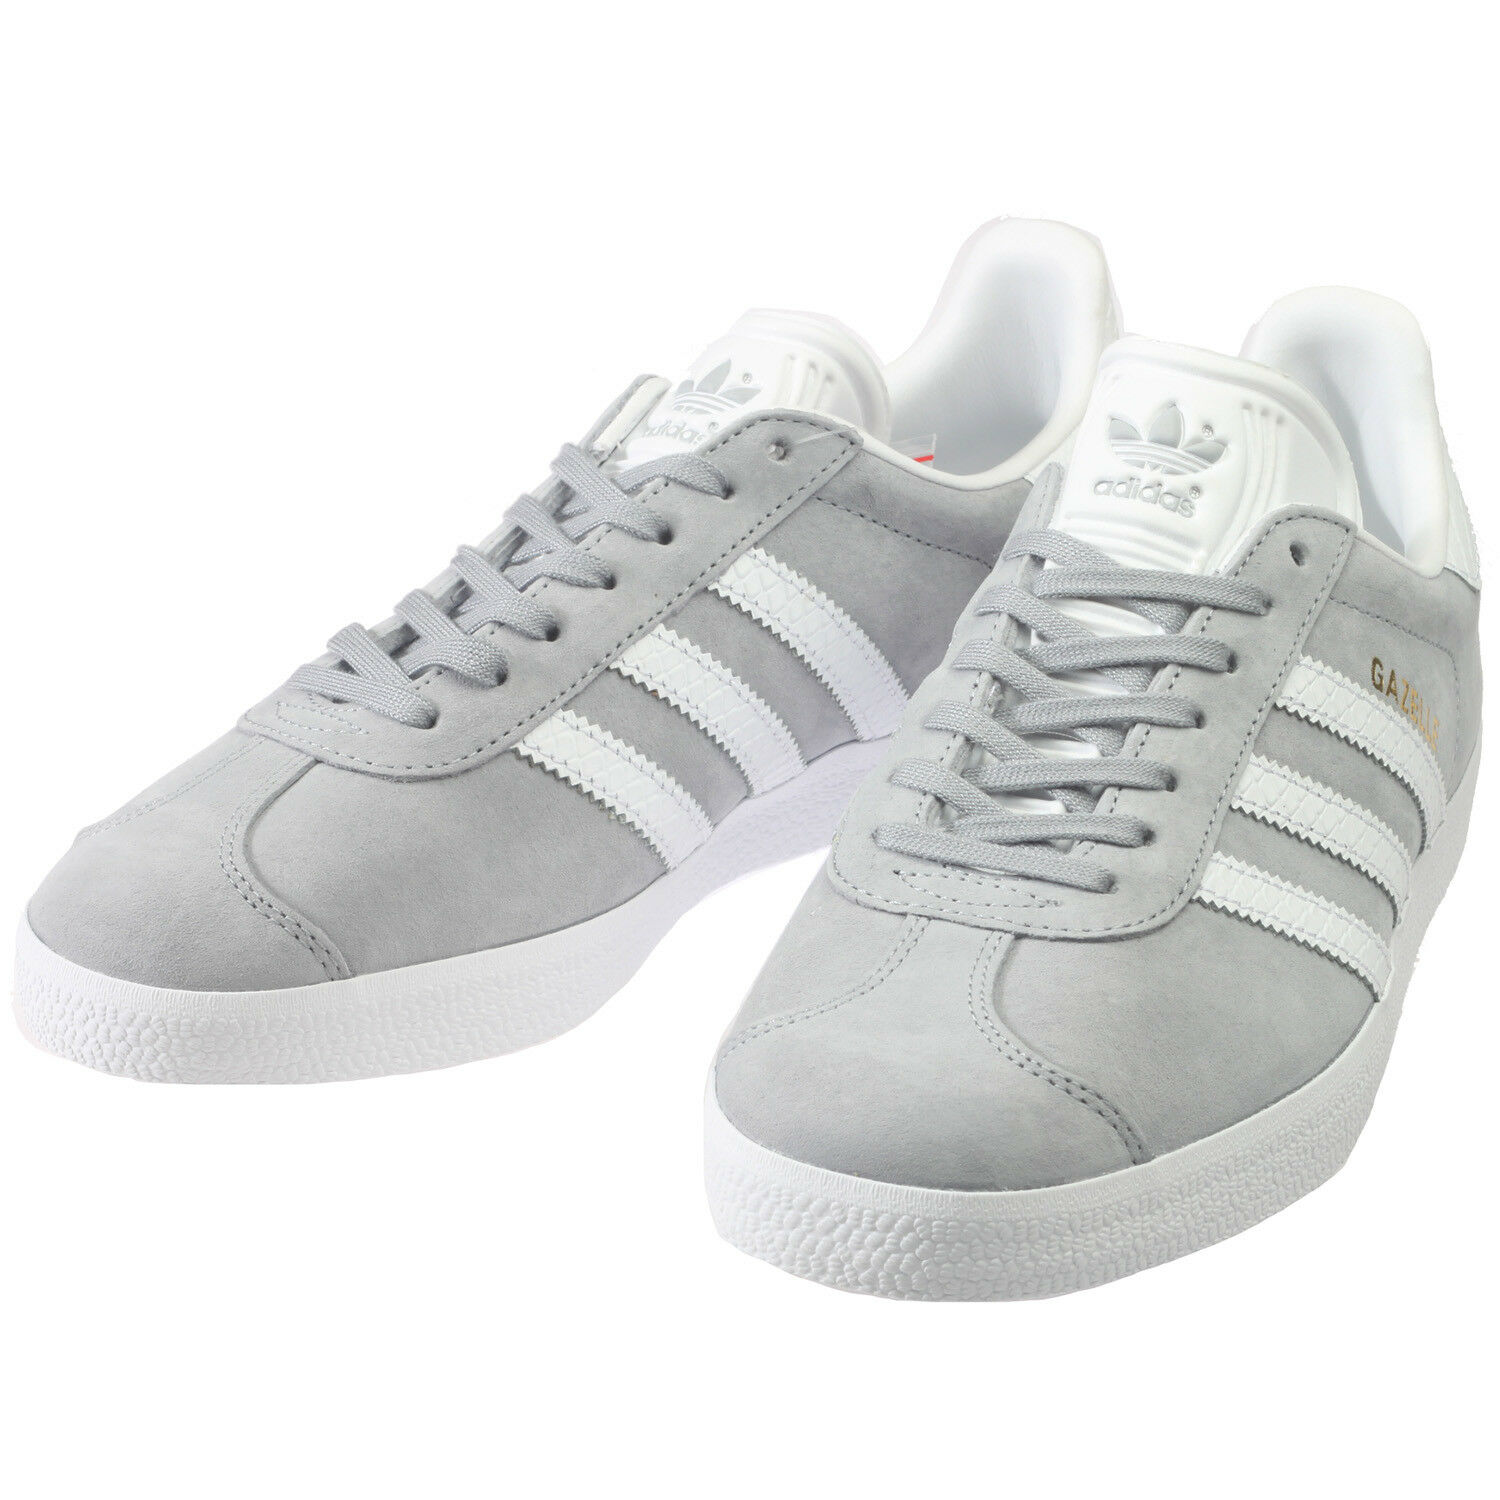 Adidas Gazelle Womens BY2852 Mid Grey White Gold Nubuck Leather Shoes Size 10